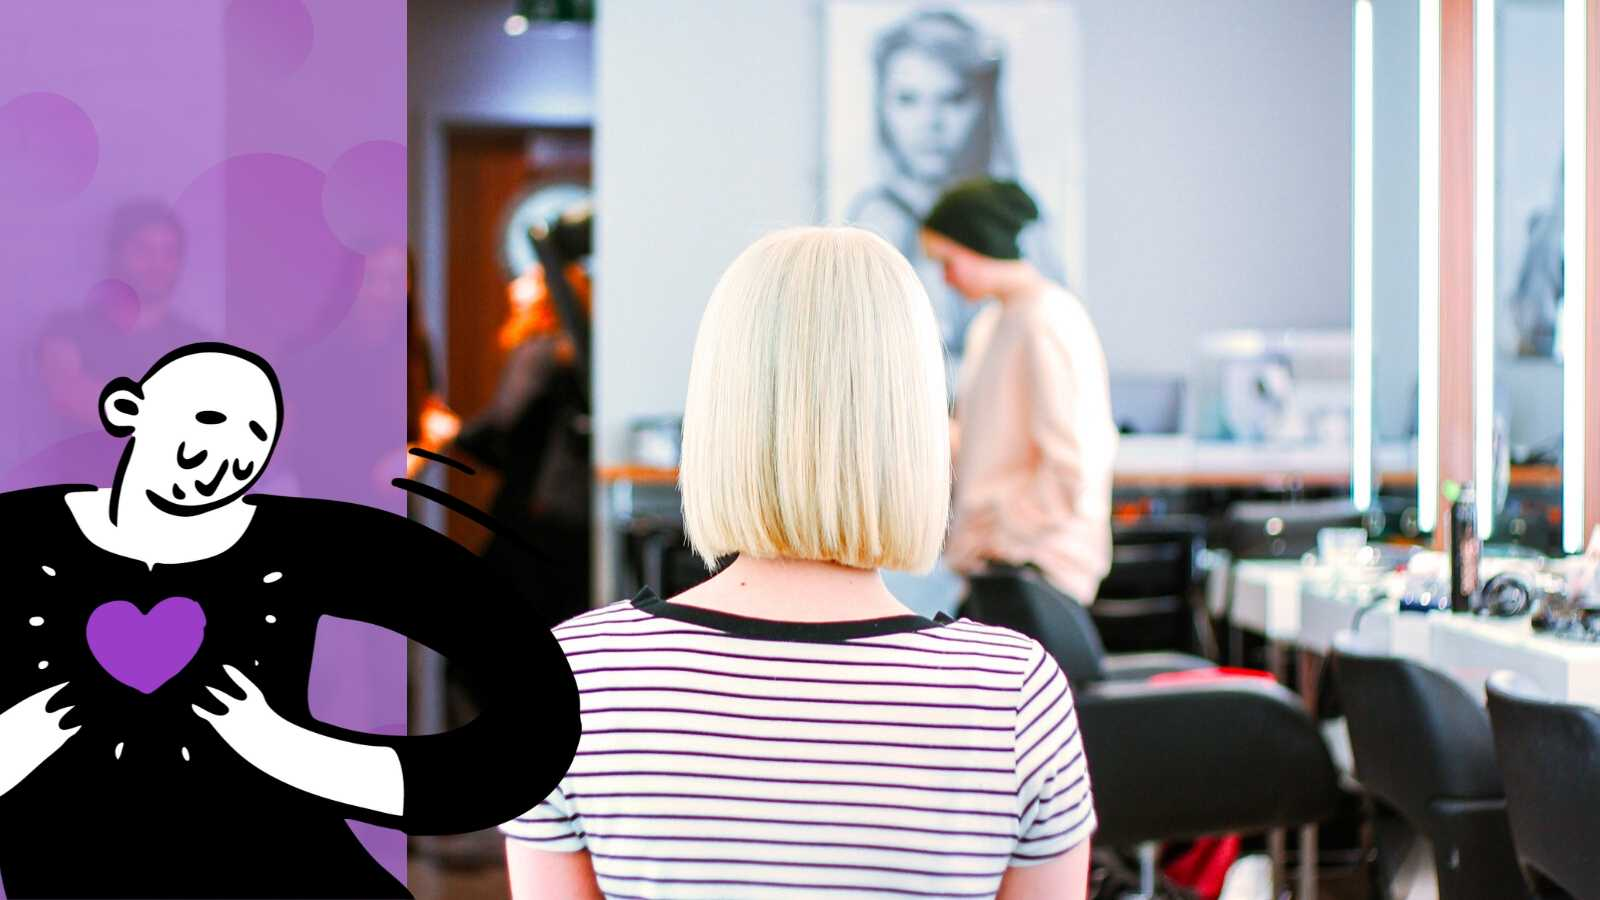 Salon Marketing: 19 Creative Ideas to Put Your Business Out There